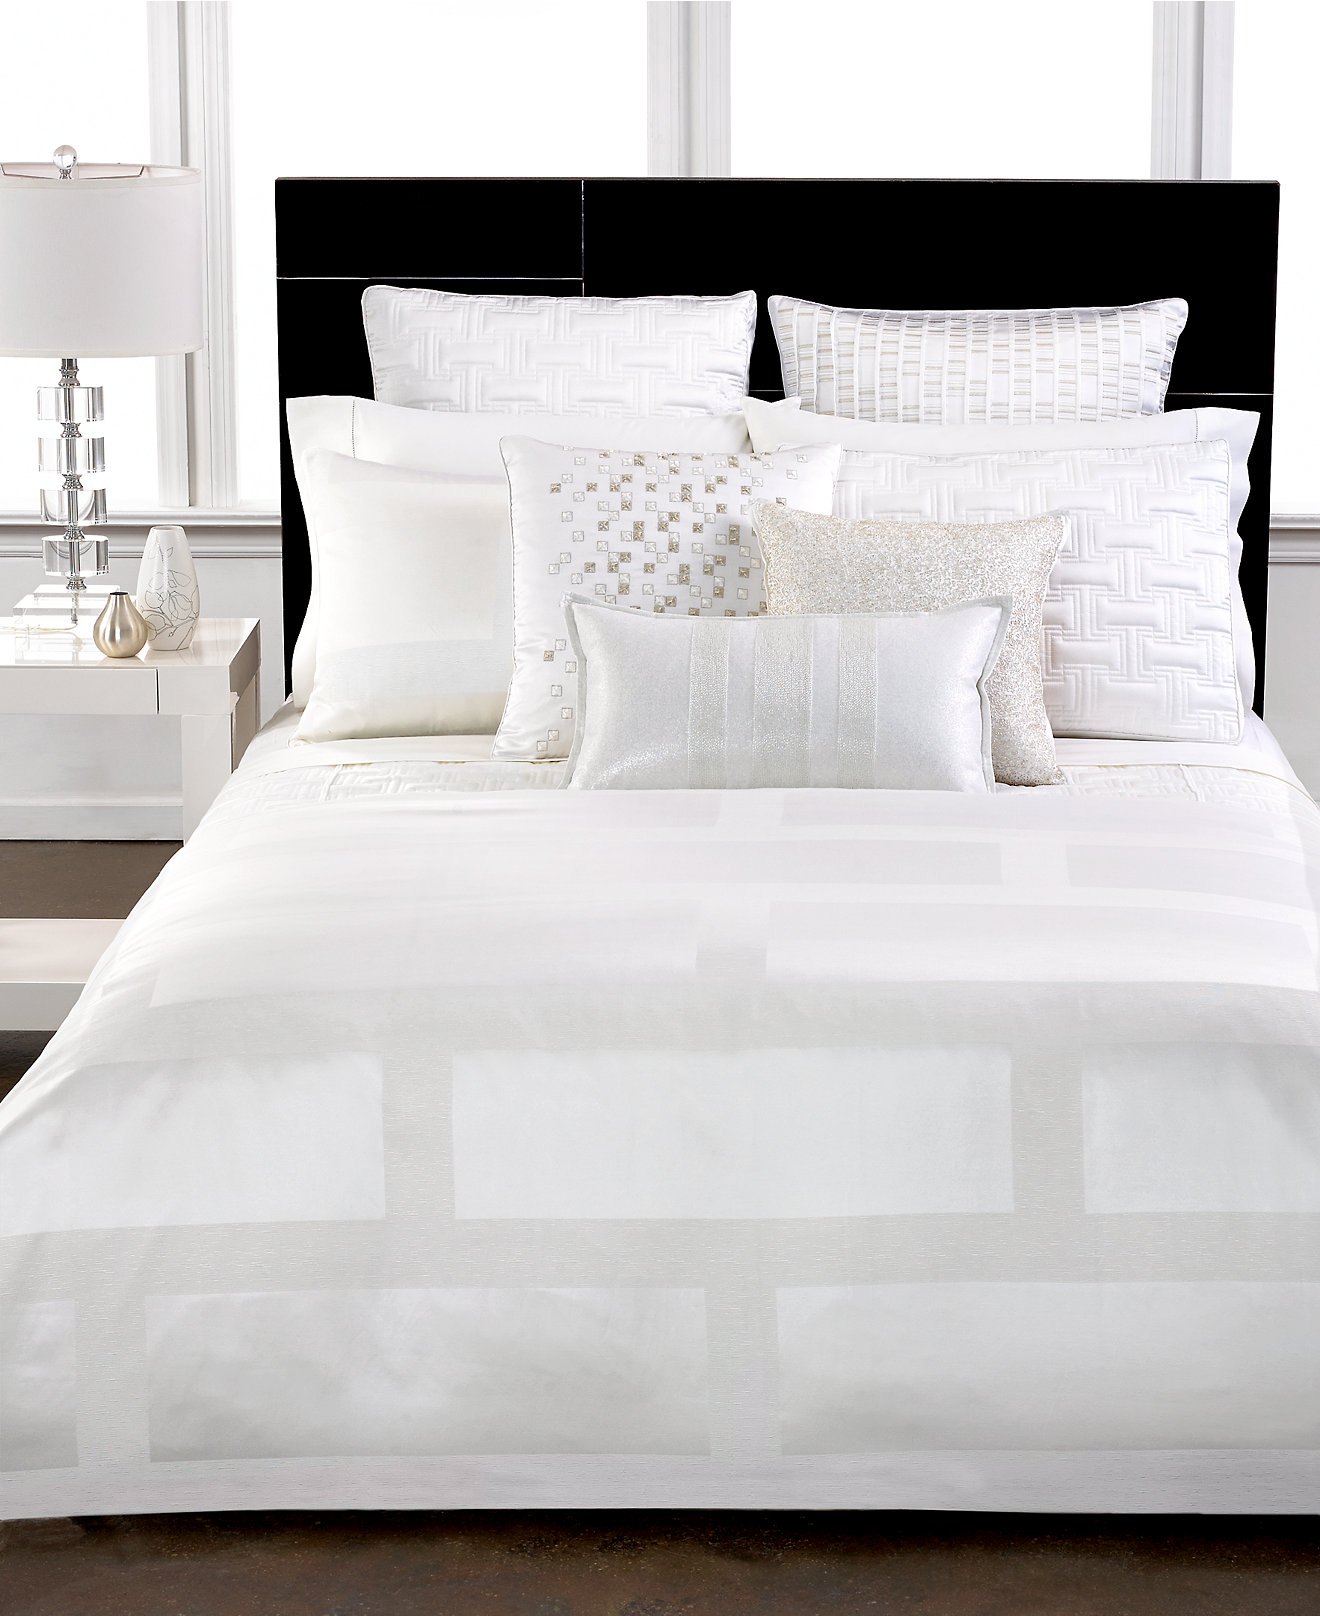 HOTEL COLLECTION Finest Hungarian White King Down Comforter Quality